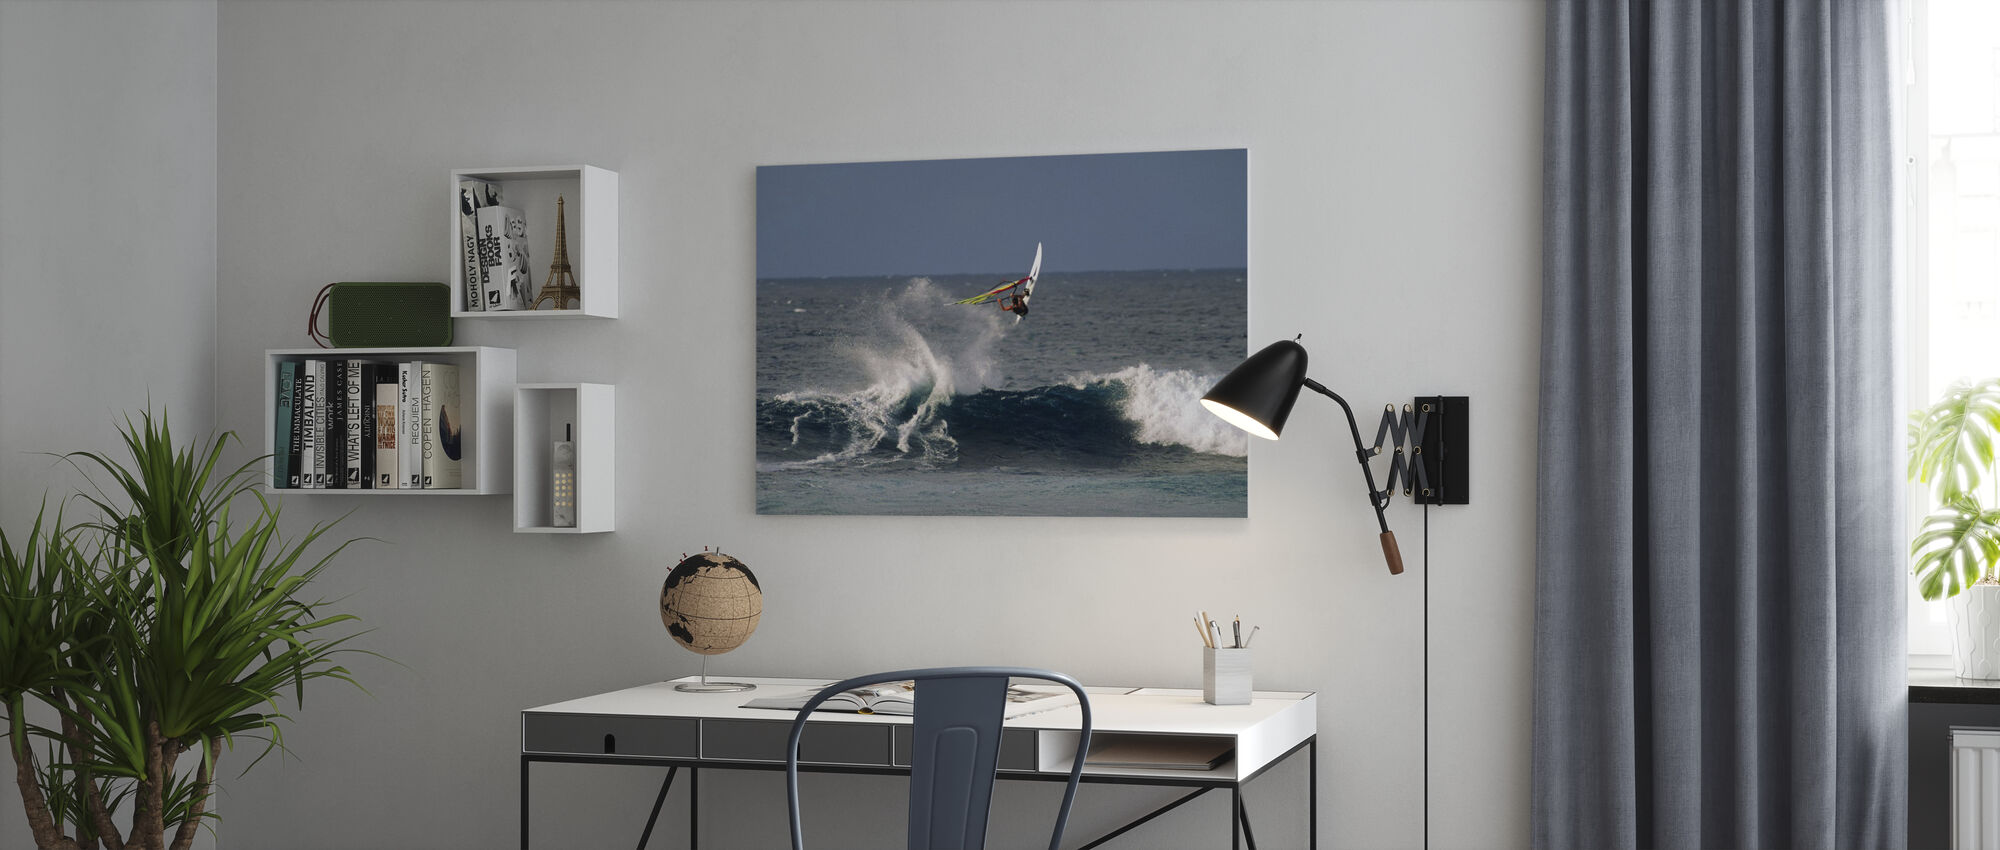 Windsurfer at Hookipa Beach Park - Canvas print - Office